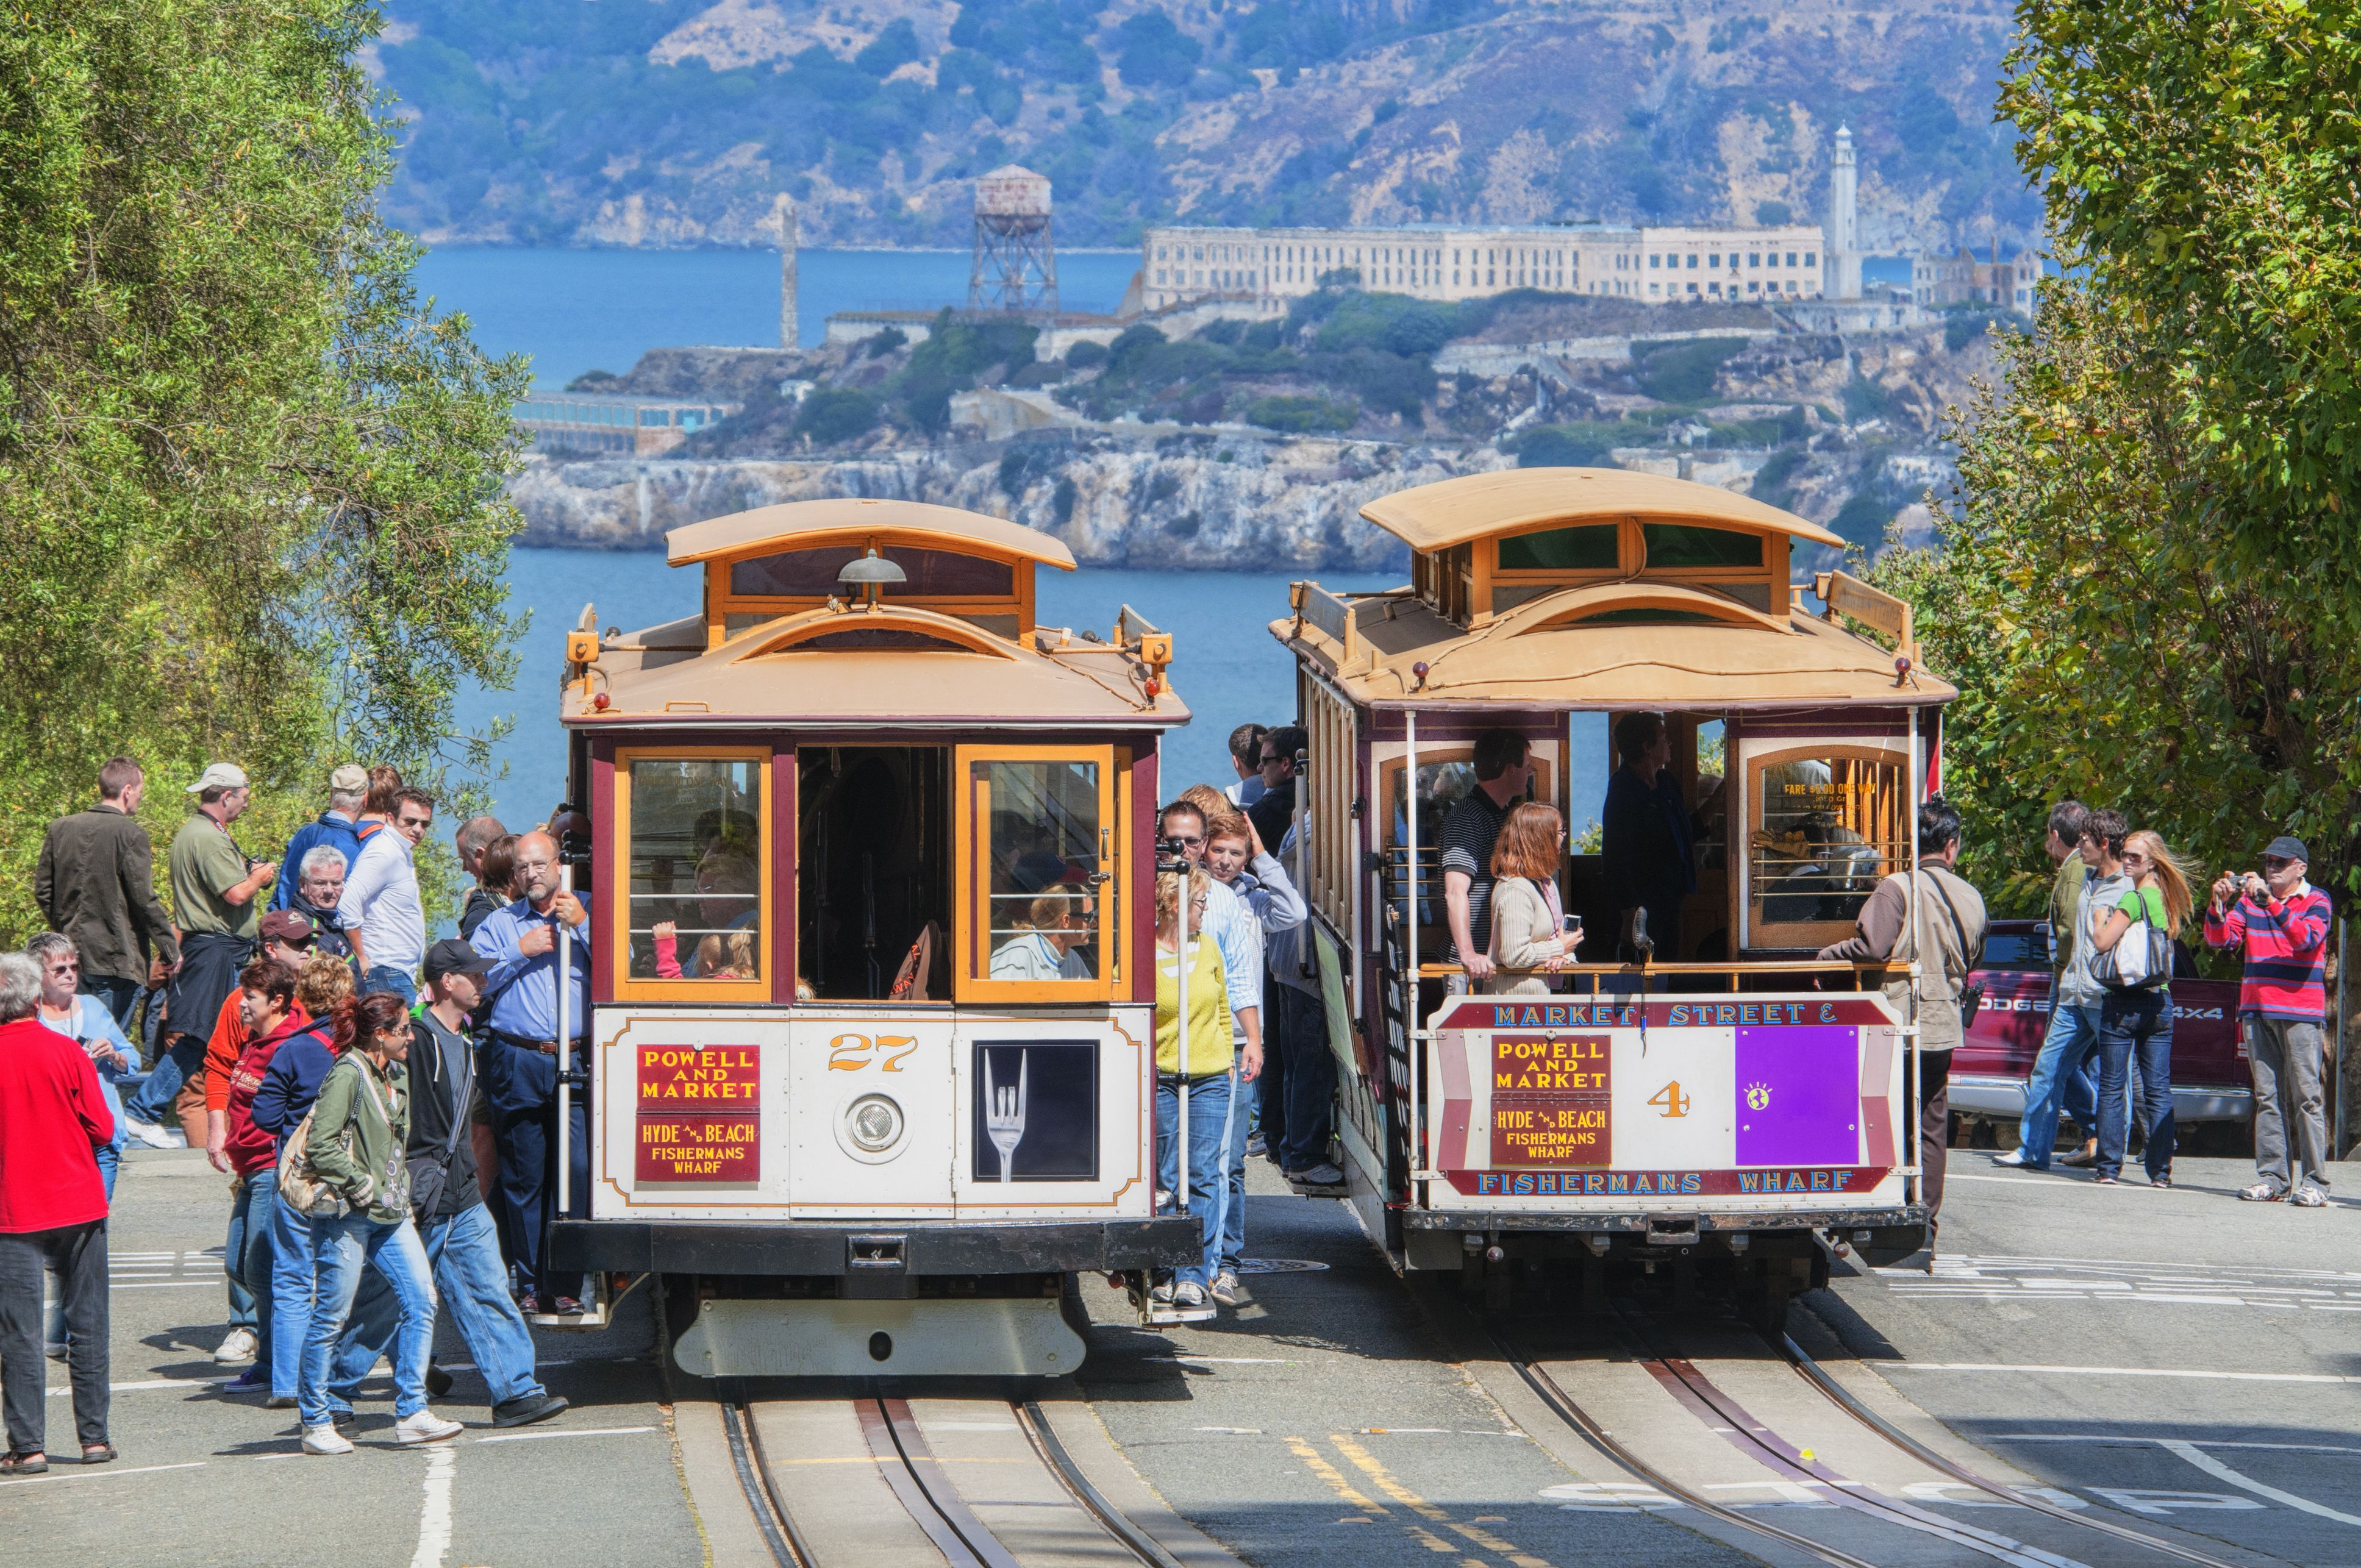 The San Francisco cable cars go up and down the San Francisco hills during the sunny month of September